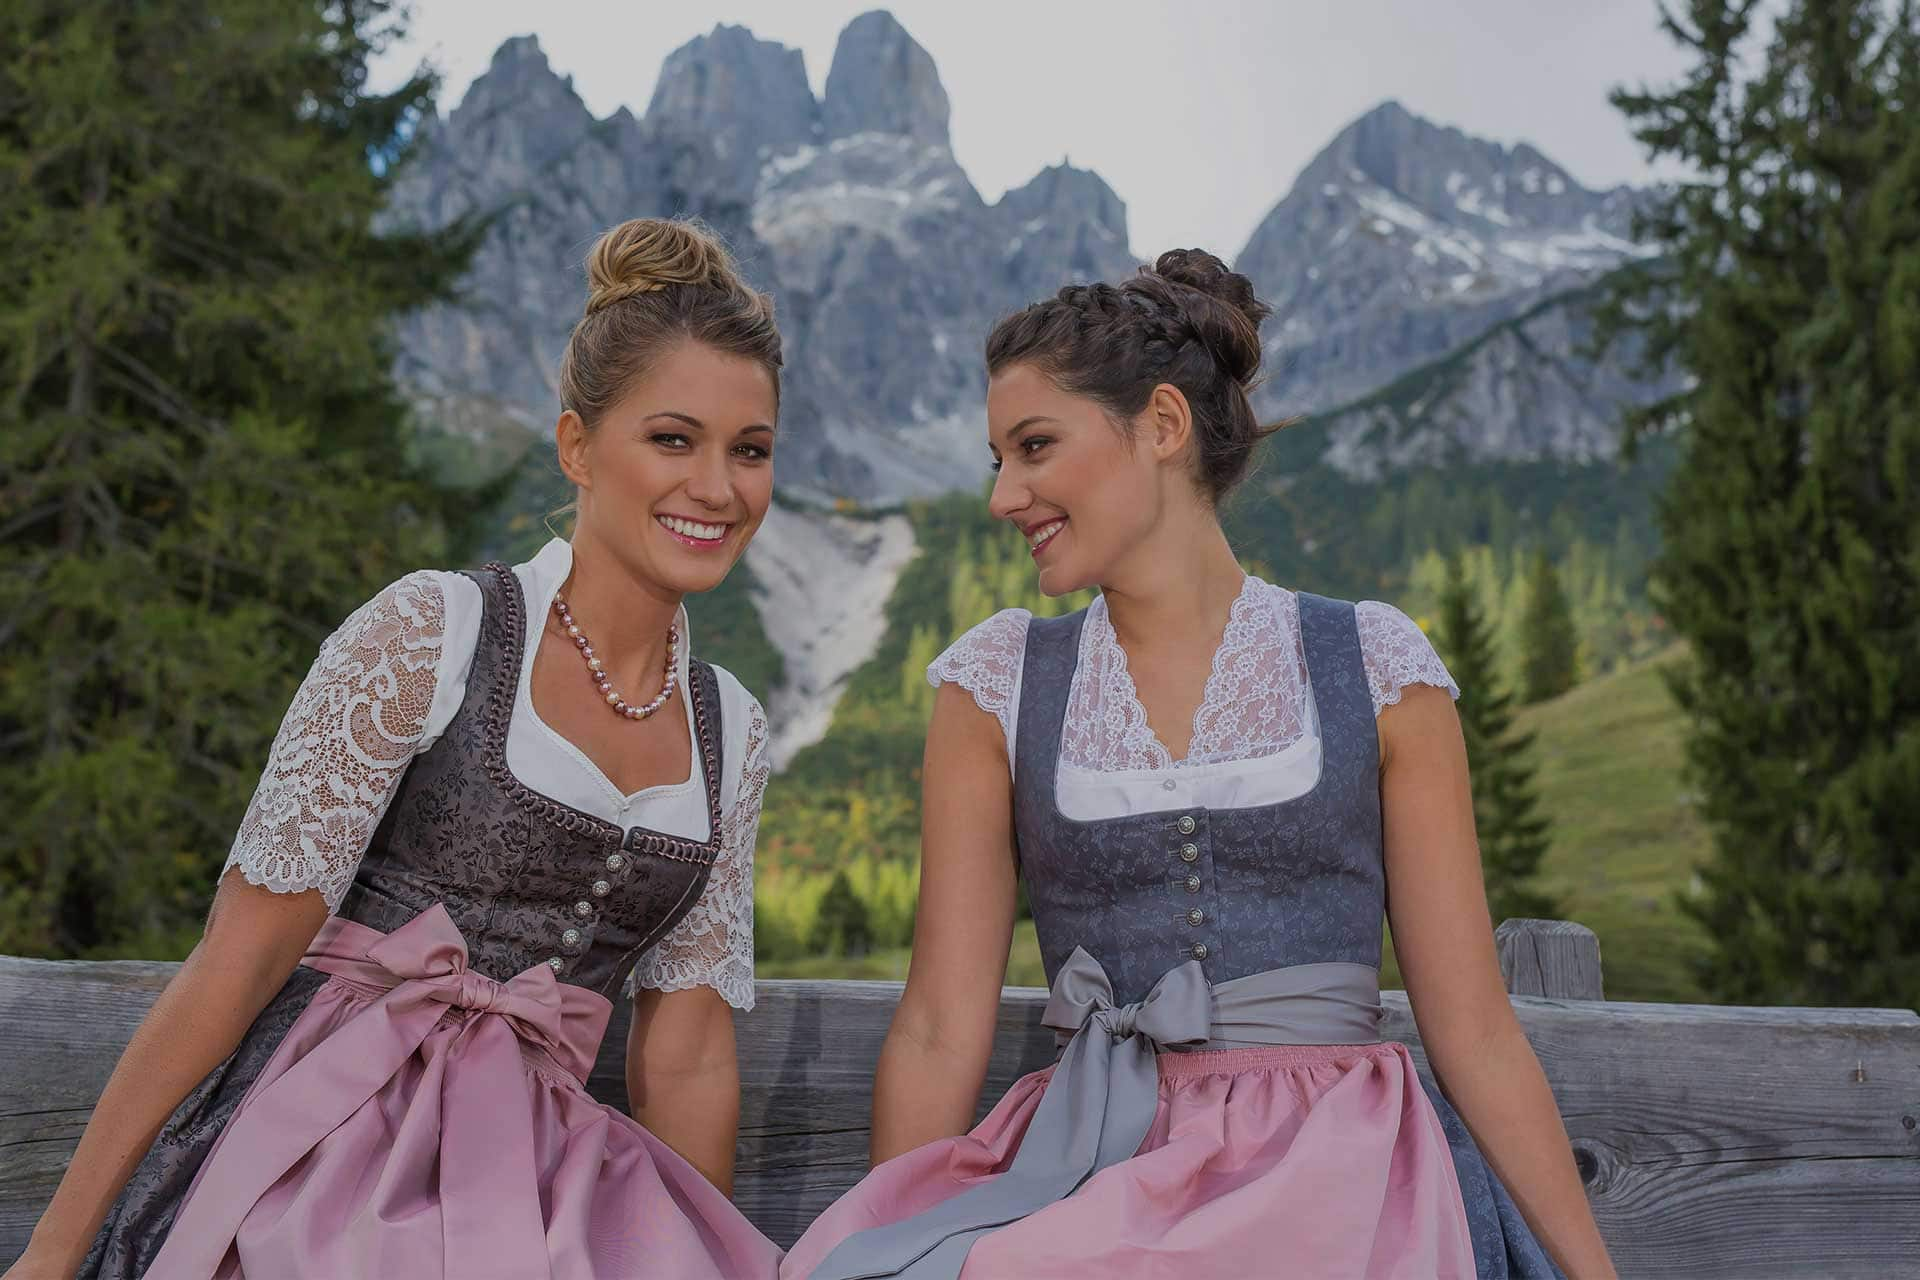 Trachten-Dirndl designed with Love by Scheibner